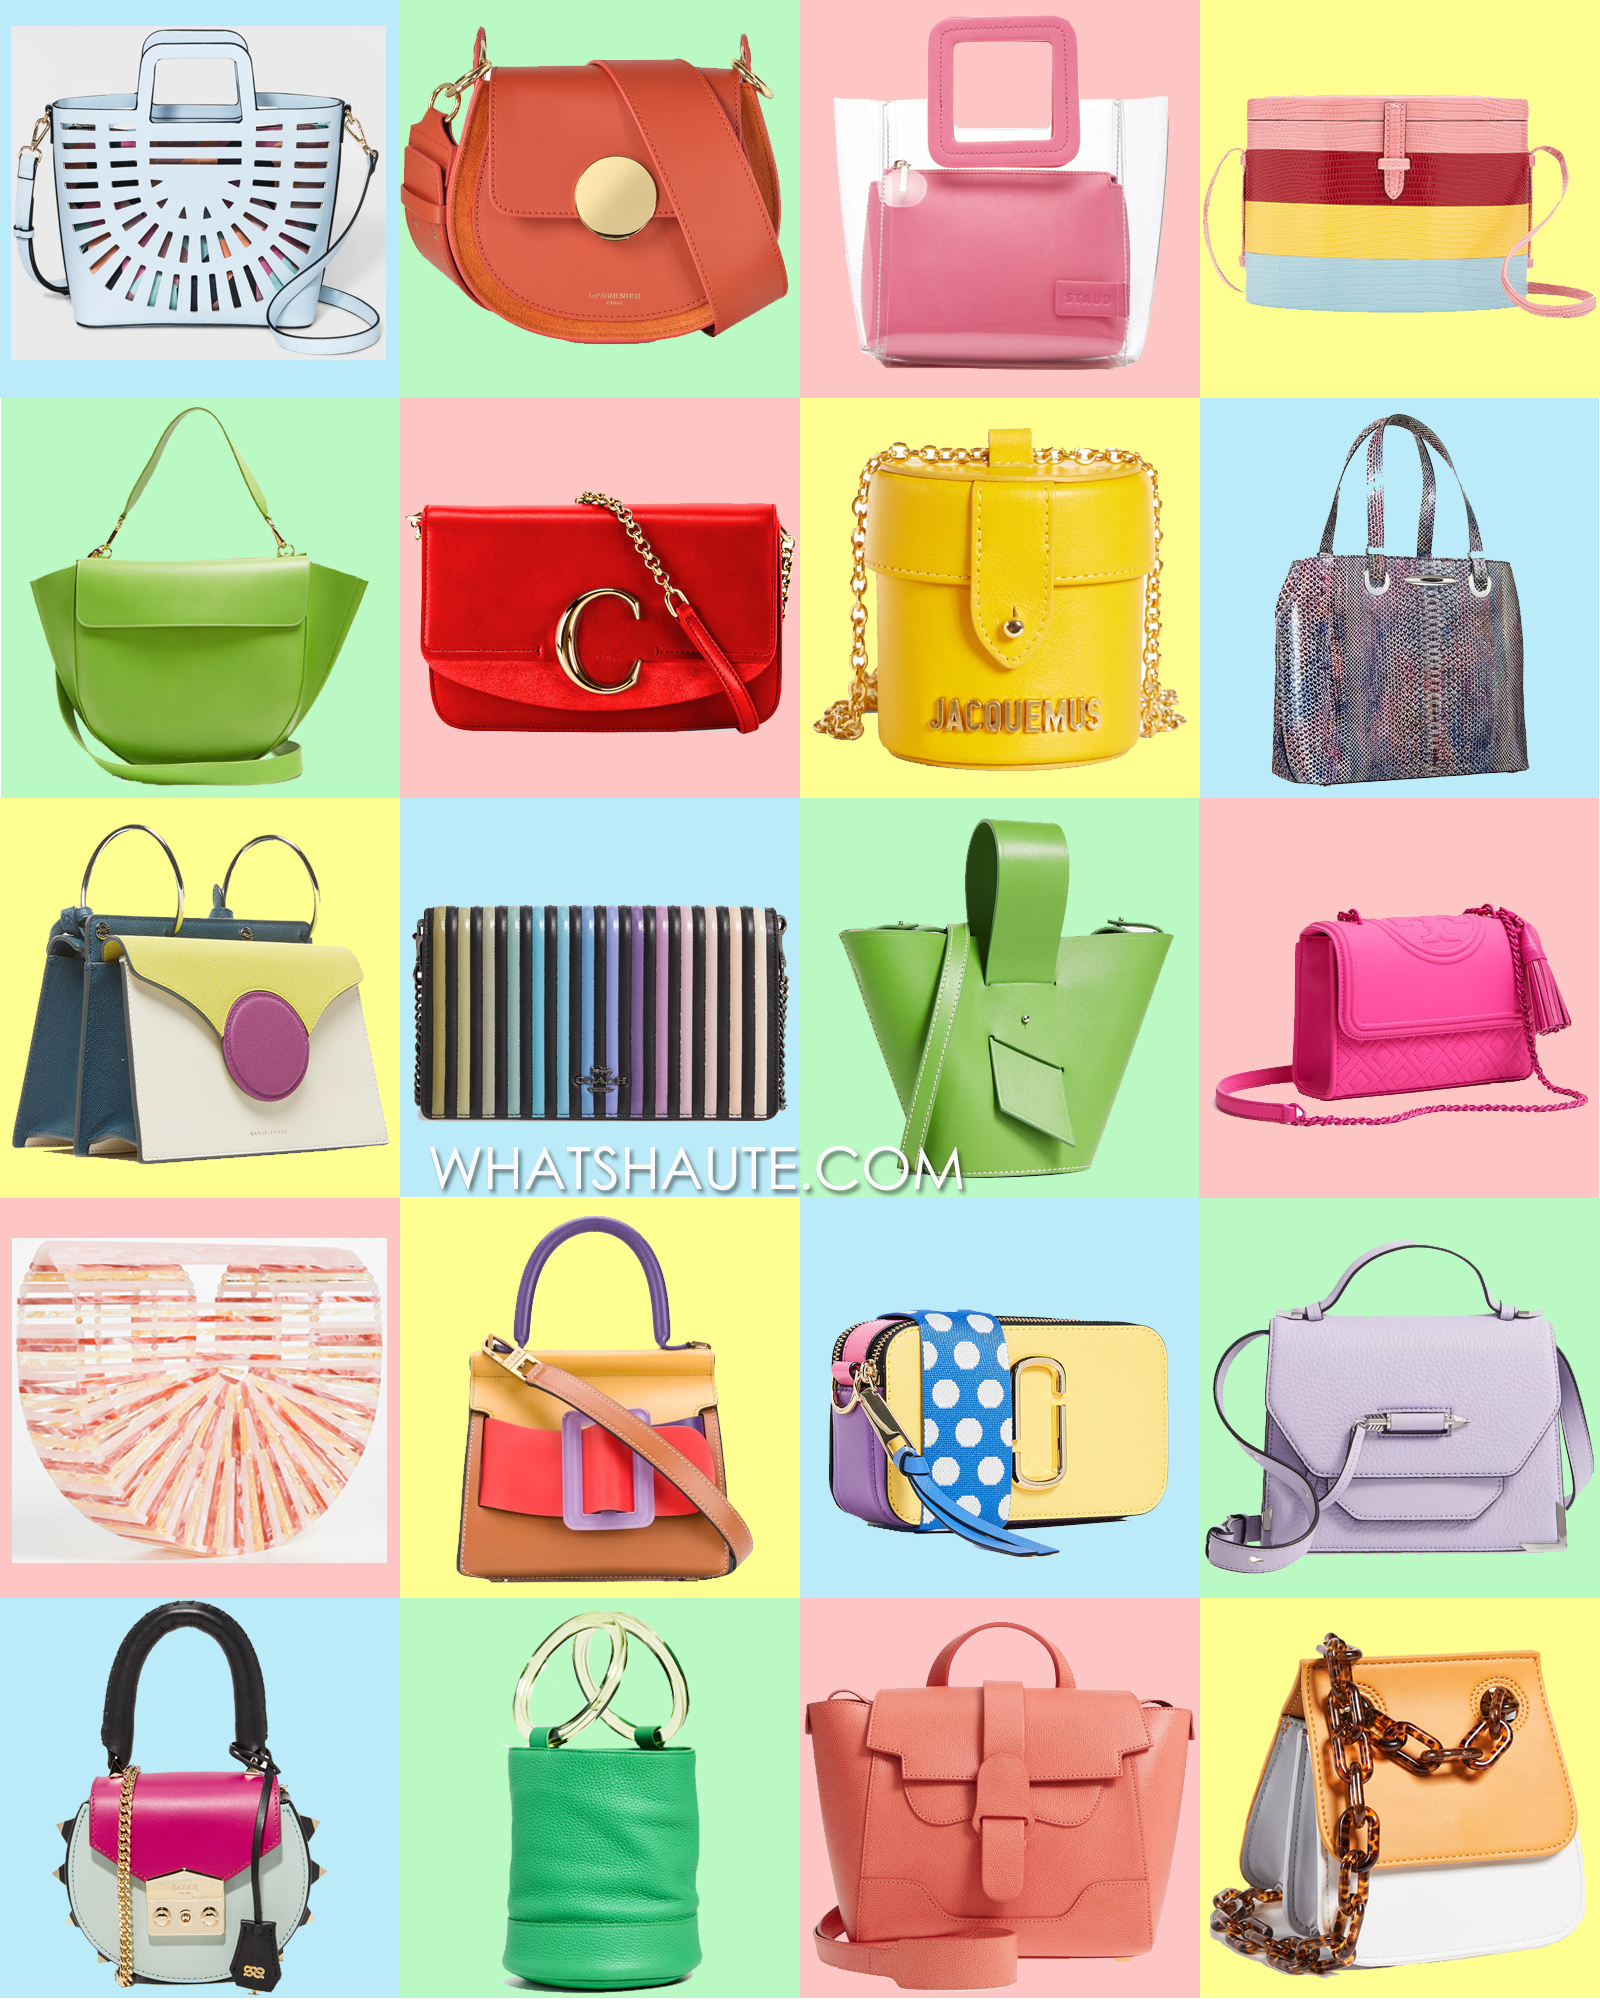 20 Colorful Handbags to Get a Jumpstart on your 2019 Spring Shopping, Laser Cut Tote Handbag - A New Day™, Le Parmentier Yucca Suede and Leather Shoulder Bag, Staud Mini Shirley Leather Bag, Hunting Season For Carolina Herrera, Wandler Hortensia Trapeze leather bag, Chloe C Shiny & Suede Calfskin Clutch With Chain, JACQUEMUS Le Vanity Leather Bag, Ella McHugh Nathalie Candy, Danse Lente Mini Phoebe Leather Bag, COACH Callie Ombré Quilting Leather Clutch, Carolina Santo Domingo Amphora Mini Adjustable Crossbody Bag, Tory Burch Fleming Matte Small Convertible Shoulder Bag, Cult Gaia Acrylic Ark Small Bag, BOYY Karl bag, Marc Jacobs Snapshot Camera Bag, Mackage Keeley Leather Satchel, Salar Mimi Mini Cross Body Bag, Simon Miller Bonsai Bag, SENREVE Mini Maestra Leather Satchel, Studio 33 Woke Shoulder Flap